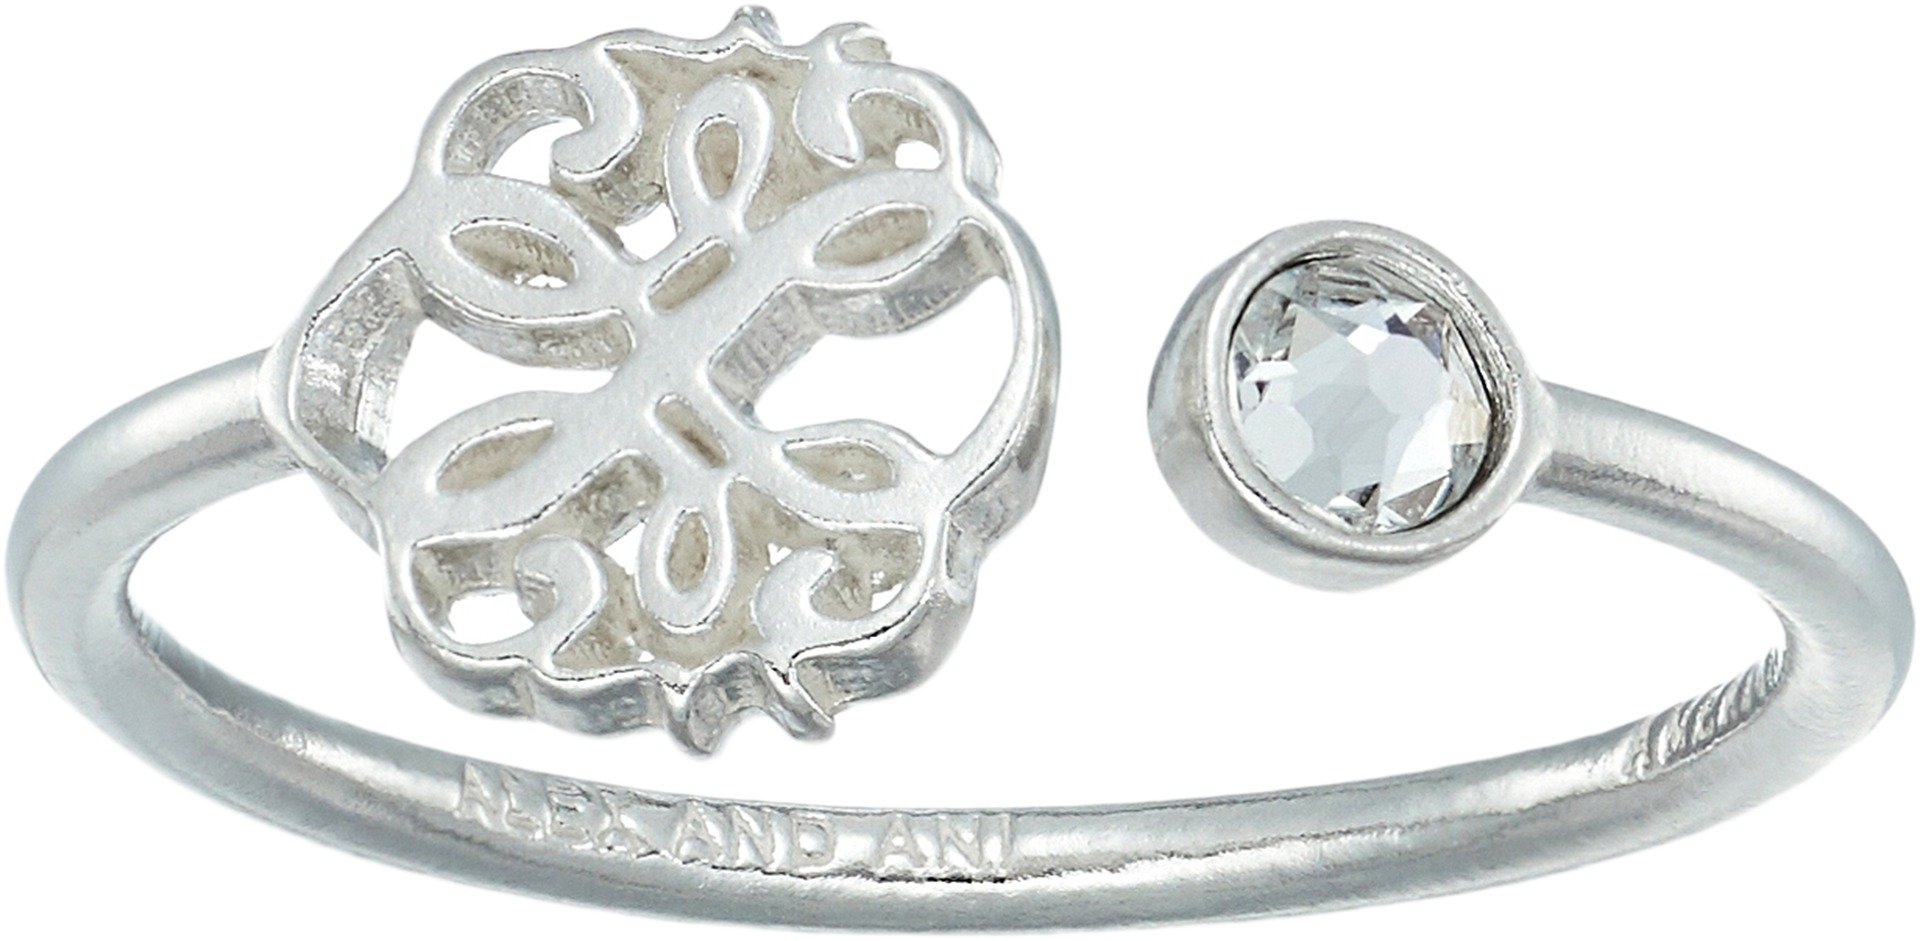 Alex and Ani Women's Path of Life Ring Sterling Silver One Size